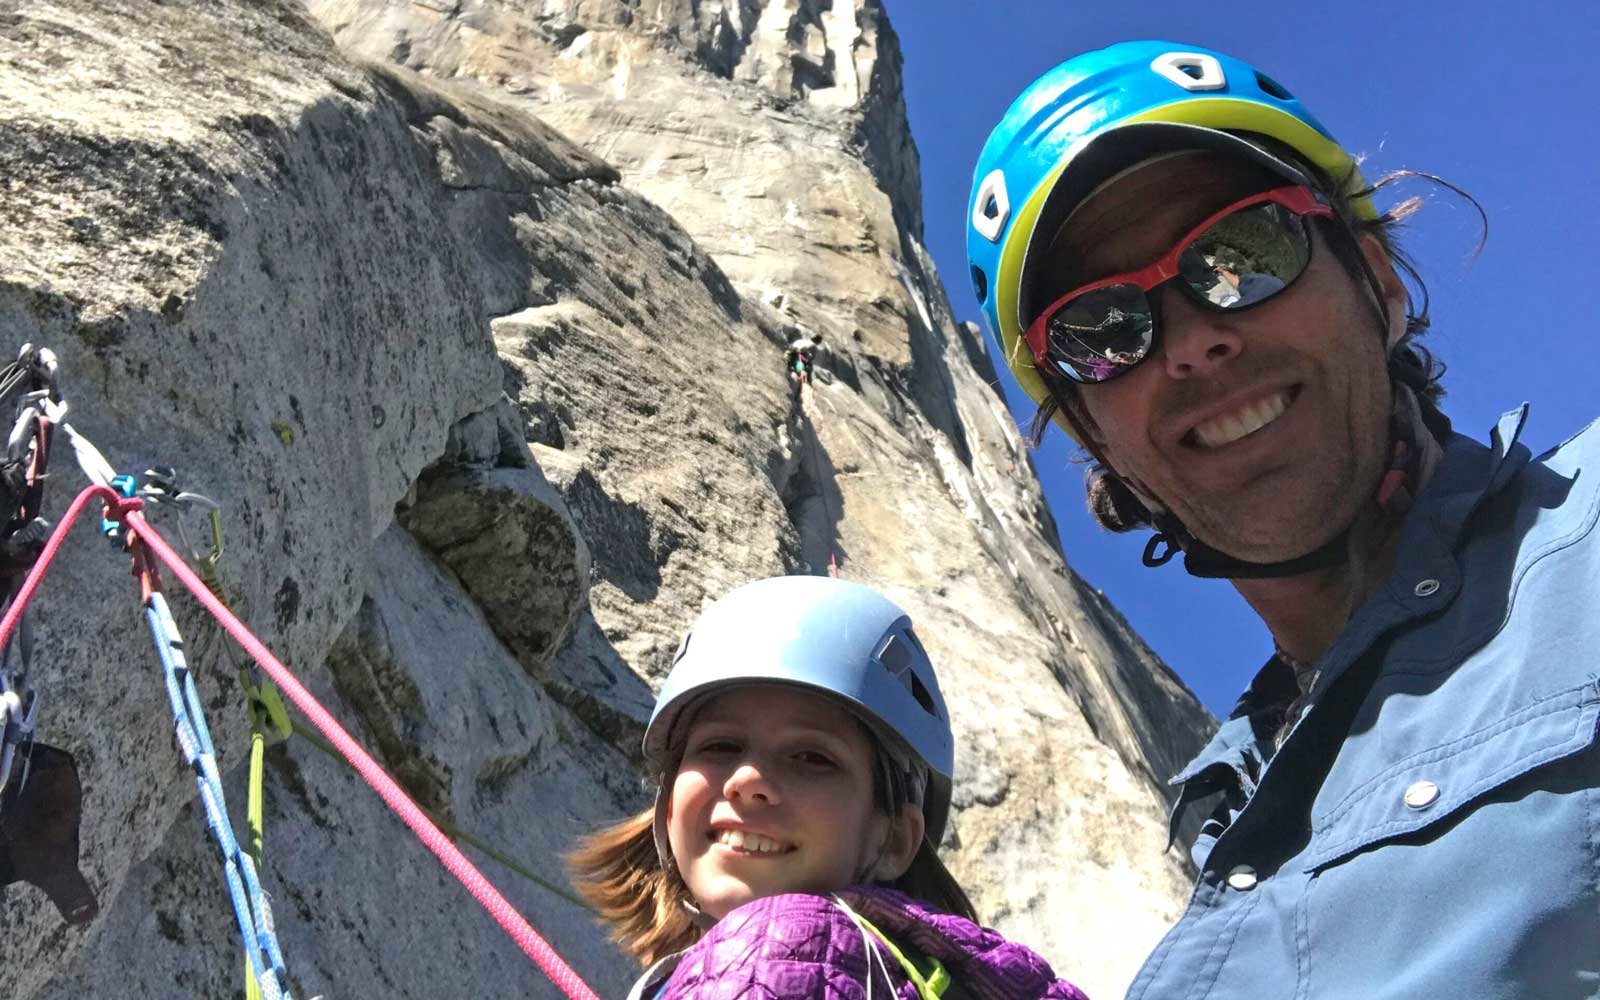 Youngest person to climb El Capitan in Yosemite National Park